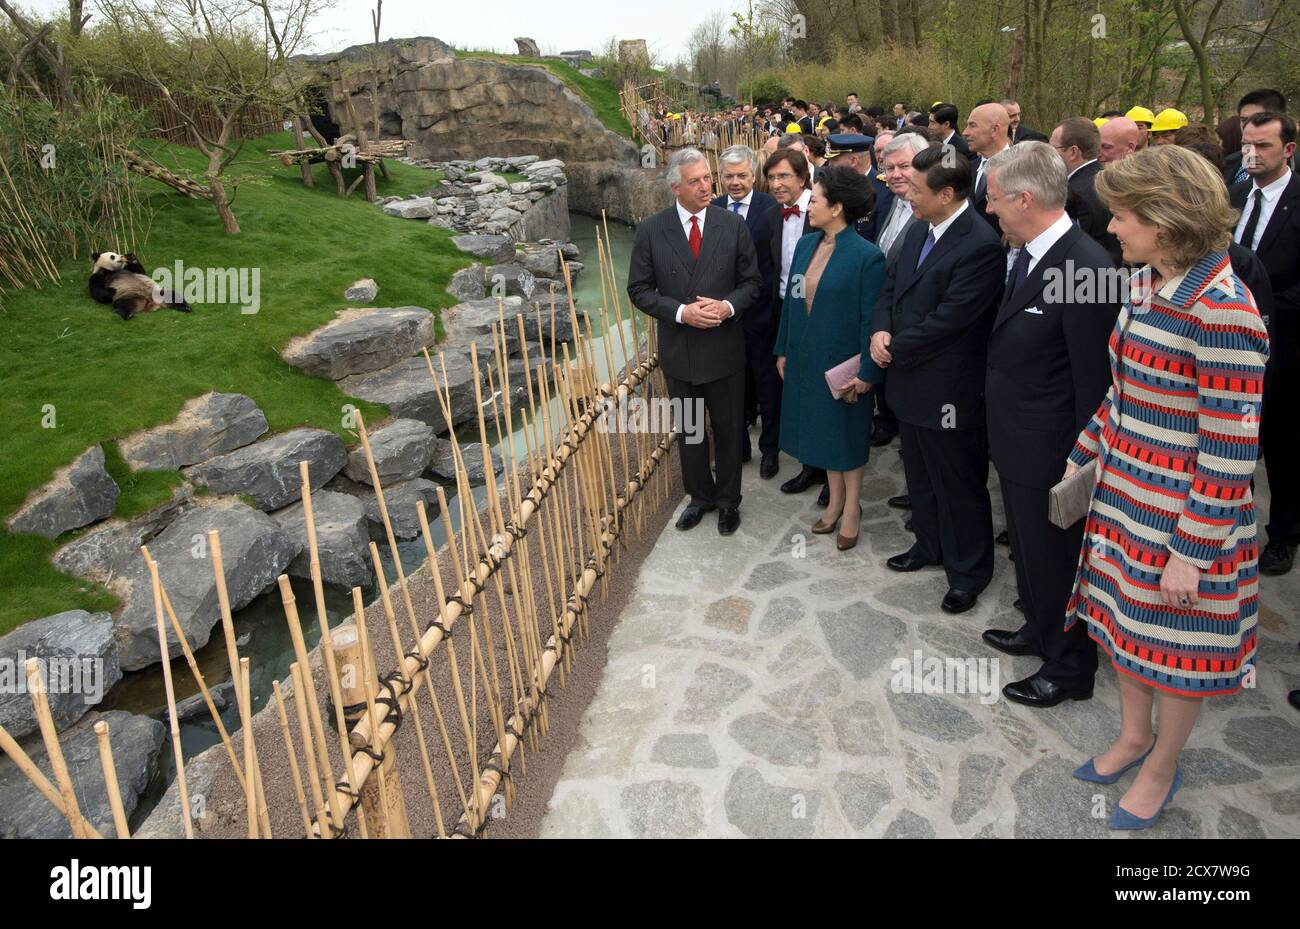 Eric Domb (L), CEO of Pairi Daiza Zoo, Belgium's King Philippe (2nd R),  Queen Mathilde (R), China's President Xi Jinping (C) and his wife Peng  Liyuan look at panda Hao Hao during